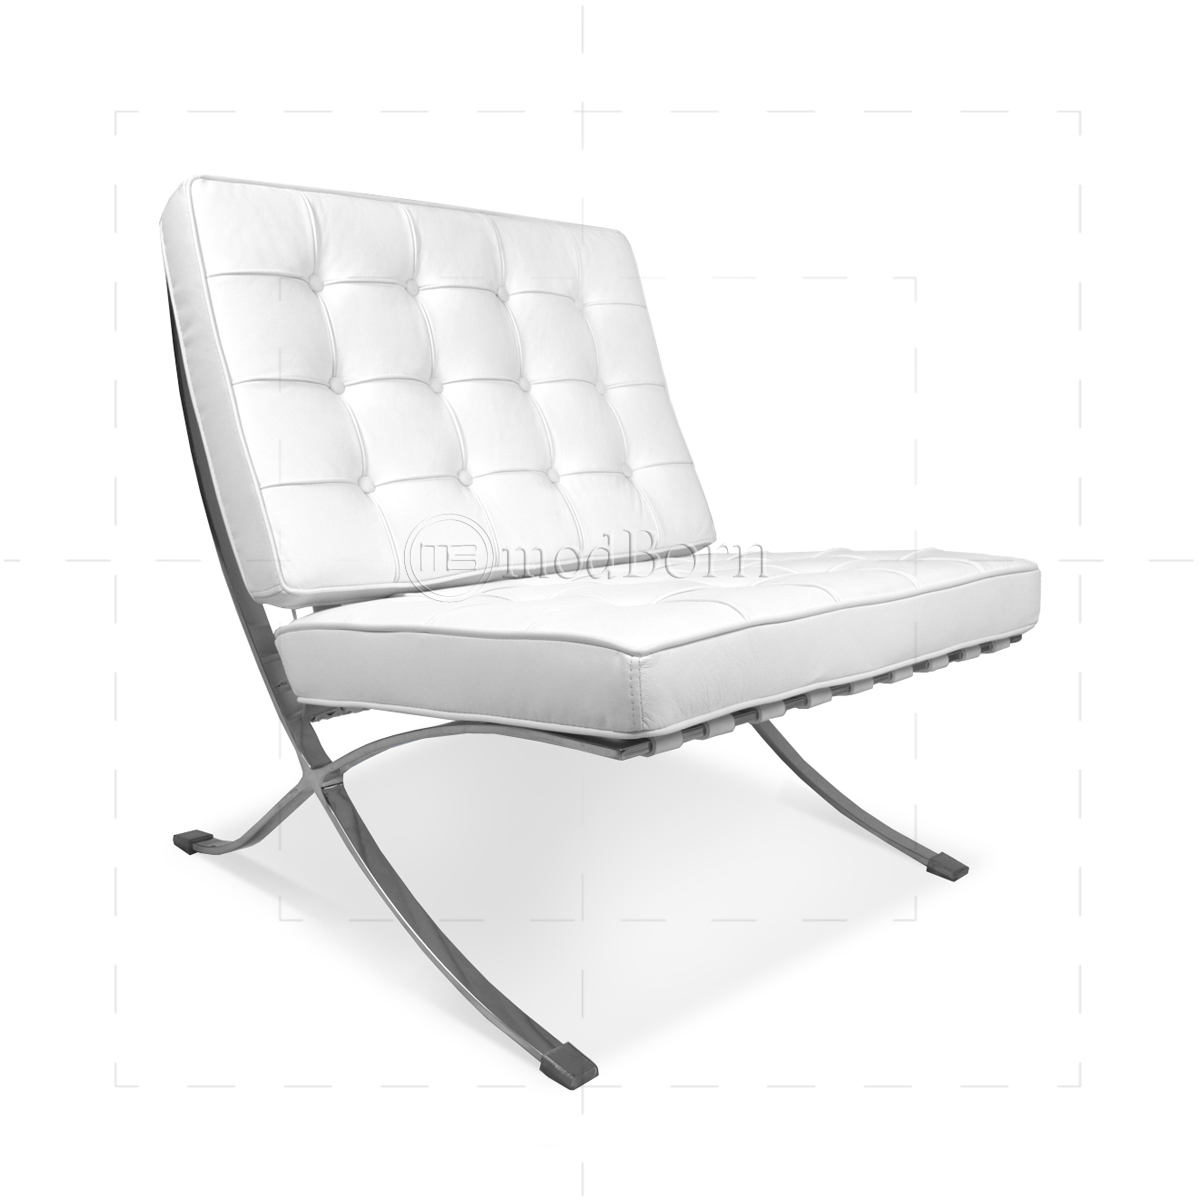 ludwig mies van der rohe barcelona style chair white barcelona chair is known as u0027chair of kingsu0027